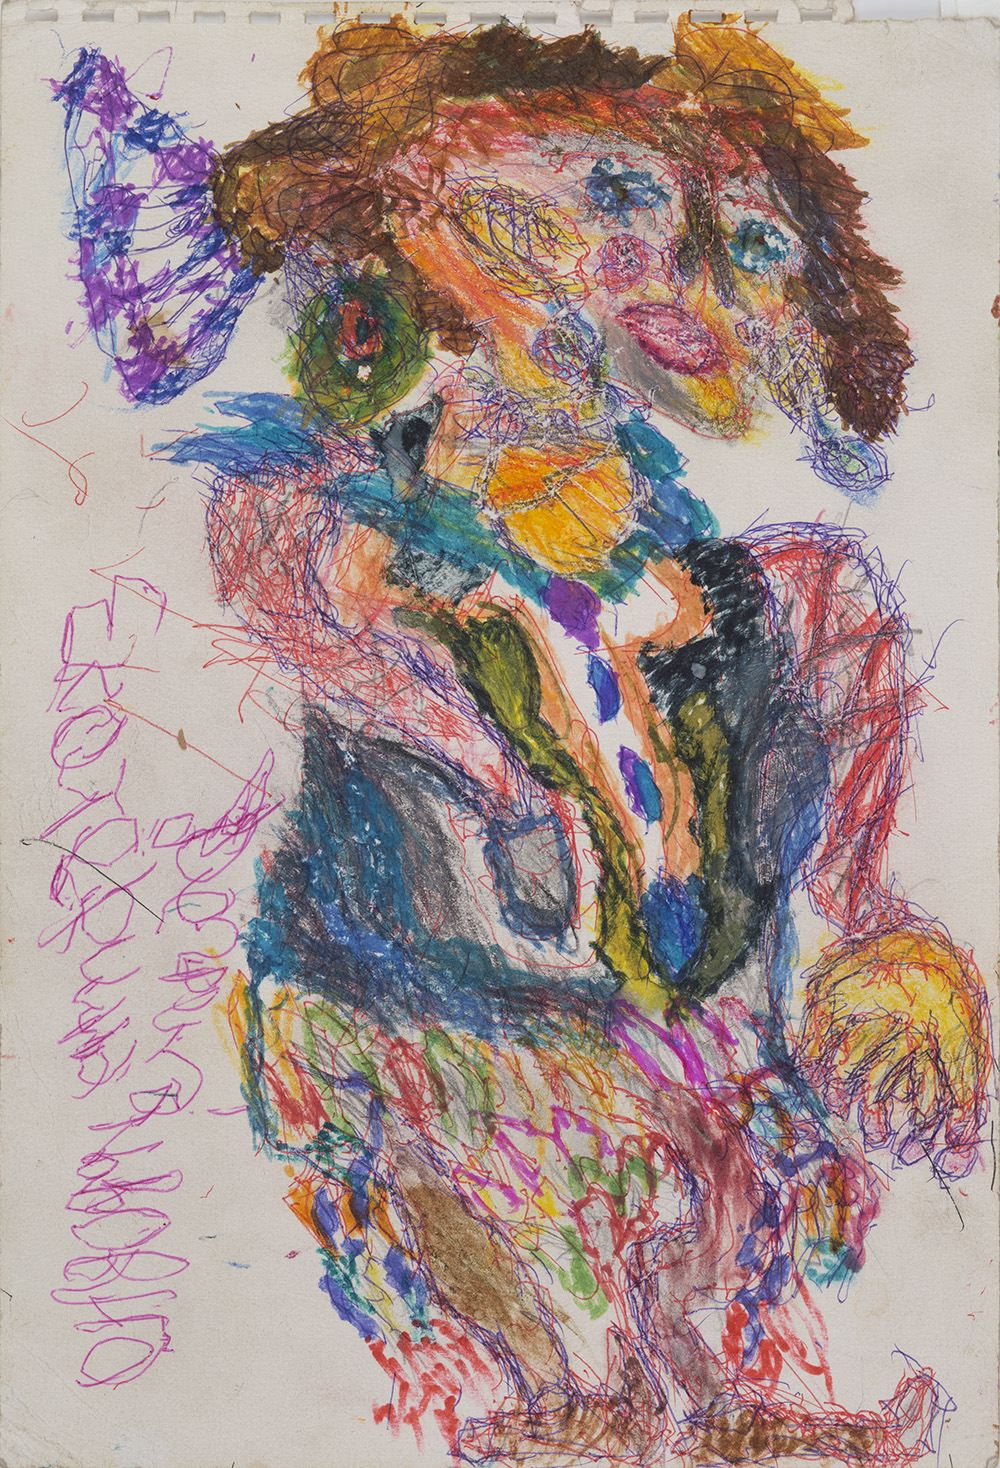 Ilya Natarevich    Untitled  , 2015 Ink, graphite, crayon on paper 15 x 10.25 inches 38.1 x 26 cm INa 10